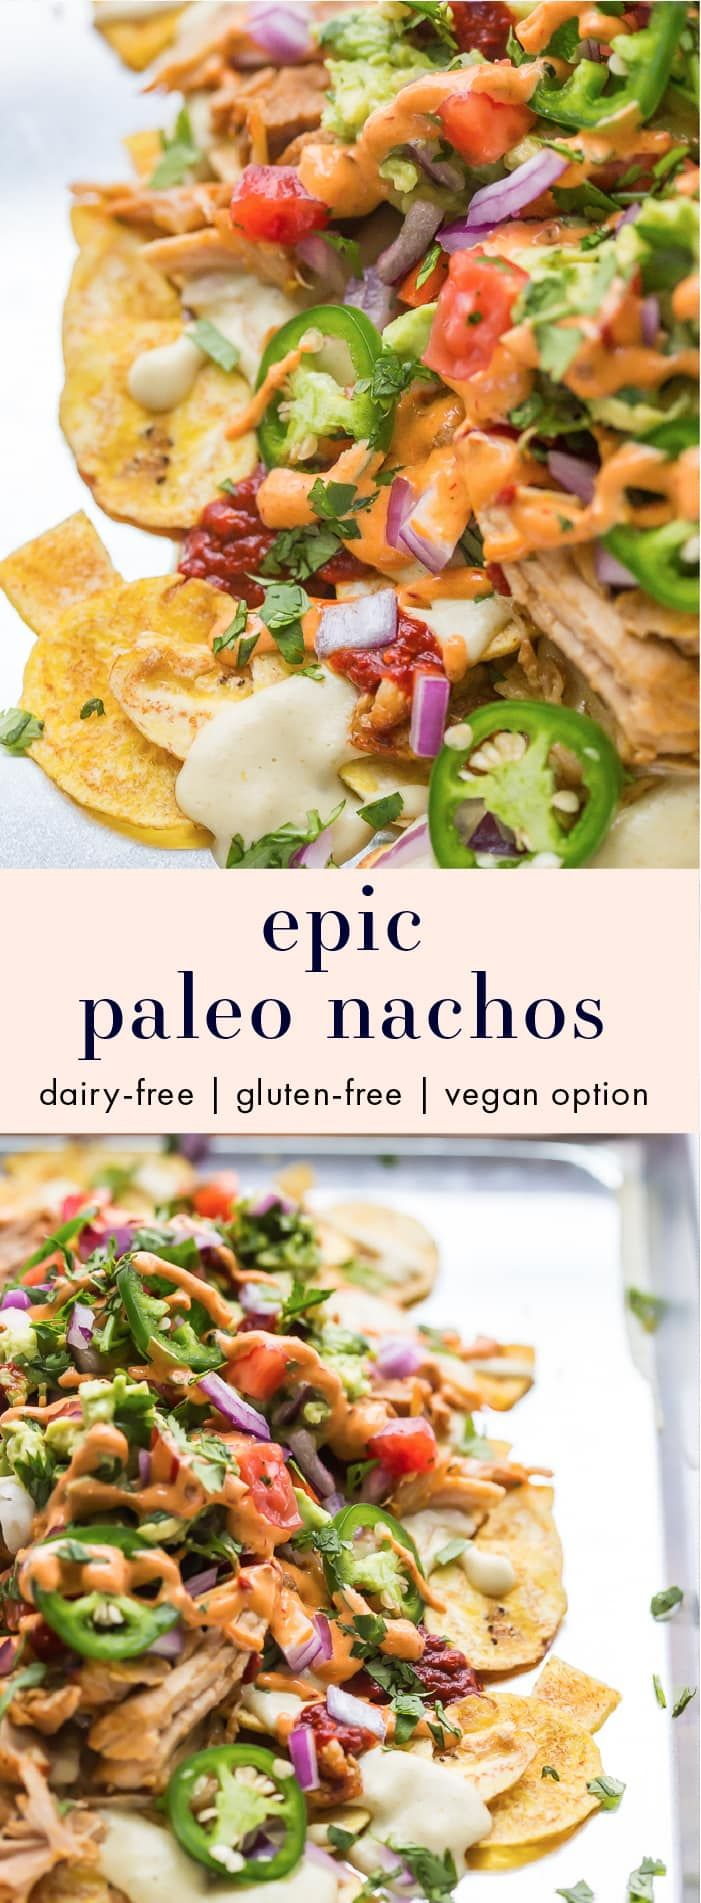 These paleo nachos are epic, aka the best paleo nachos ever. What makes paleo nachos epic, you ask? Well, what do you think of plantain chips topped with tender carnitas, the best paleo queso blanco, guacamole, pico de gallo, smoky guajillo salsa, and creamy chipotle sauce? If those doesn't sound like the best paleo nachos to you, I just don't even know who you are anymore. To make these vegan, simply tofu or your favorite meatless protein for the carnitas.